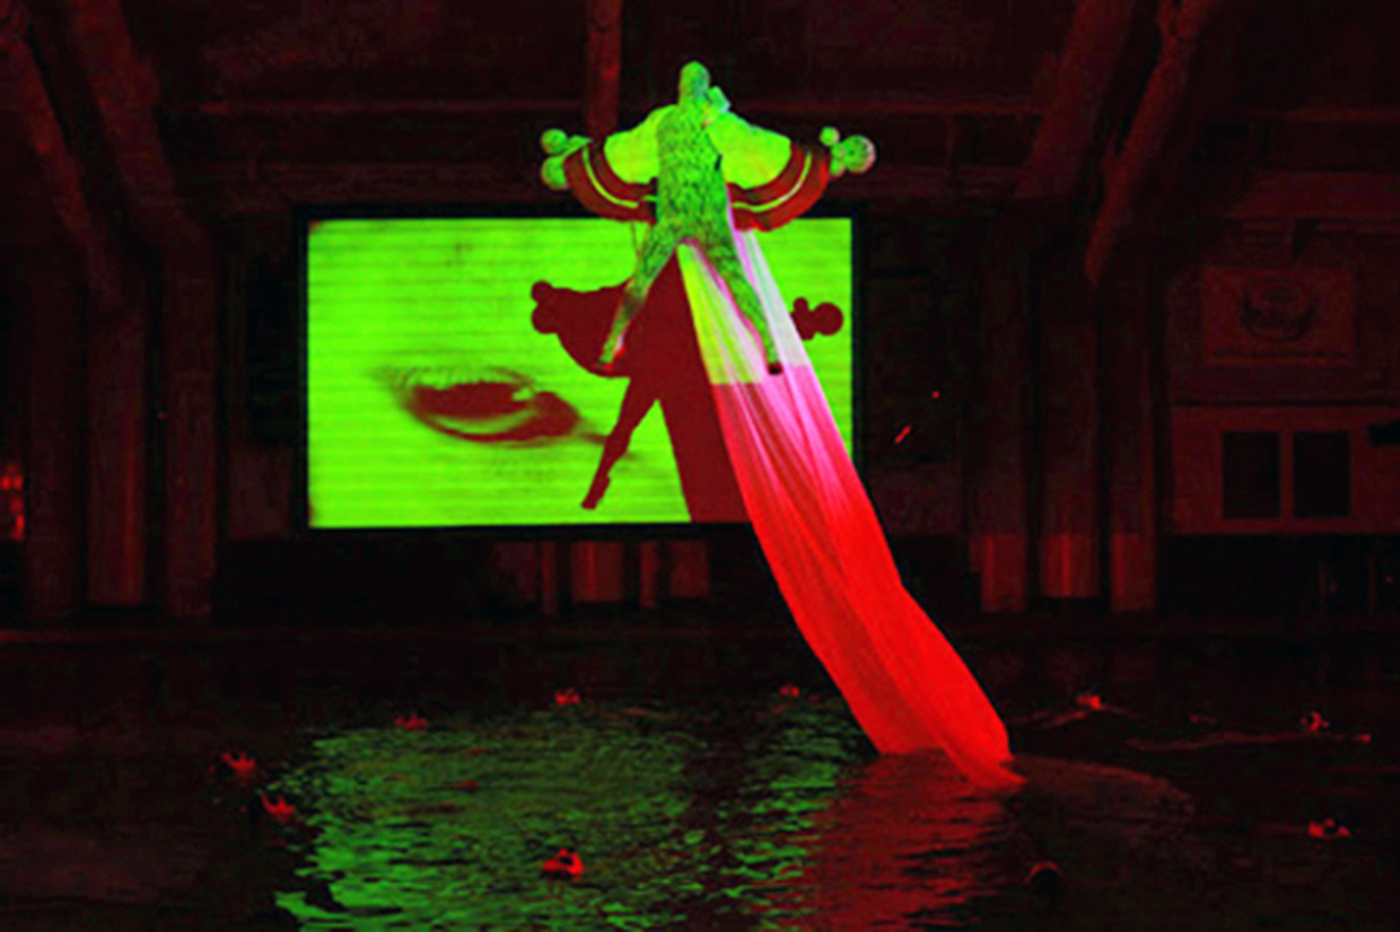 Athi-Patra Ruga - Performance view - Ilulwane, NYC, Performa, 2011